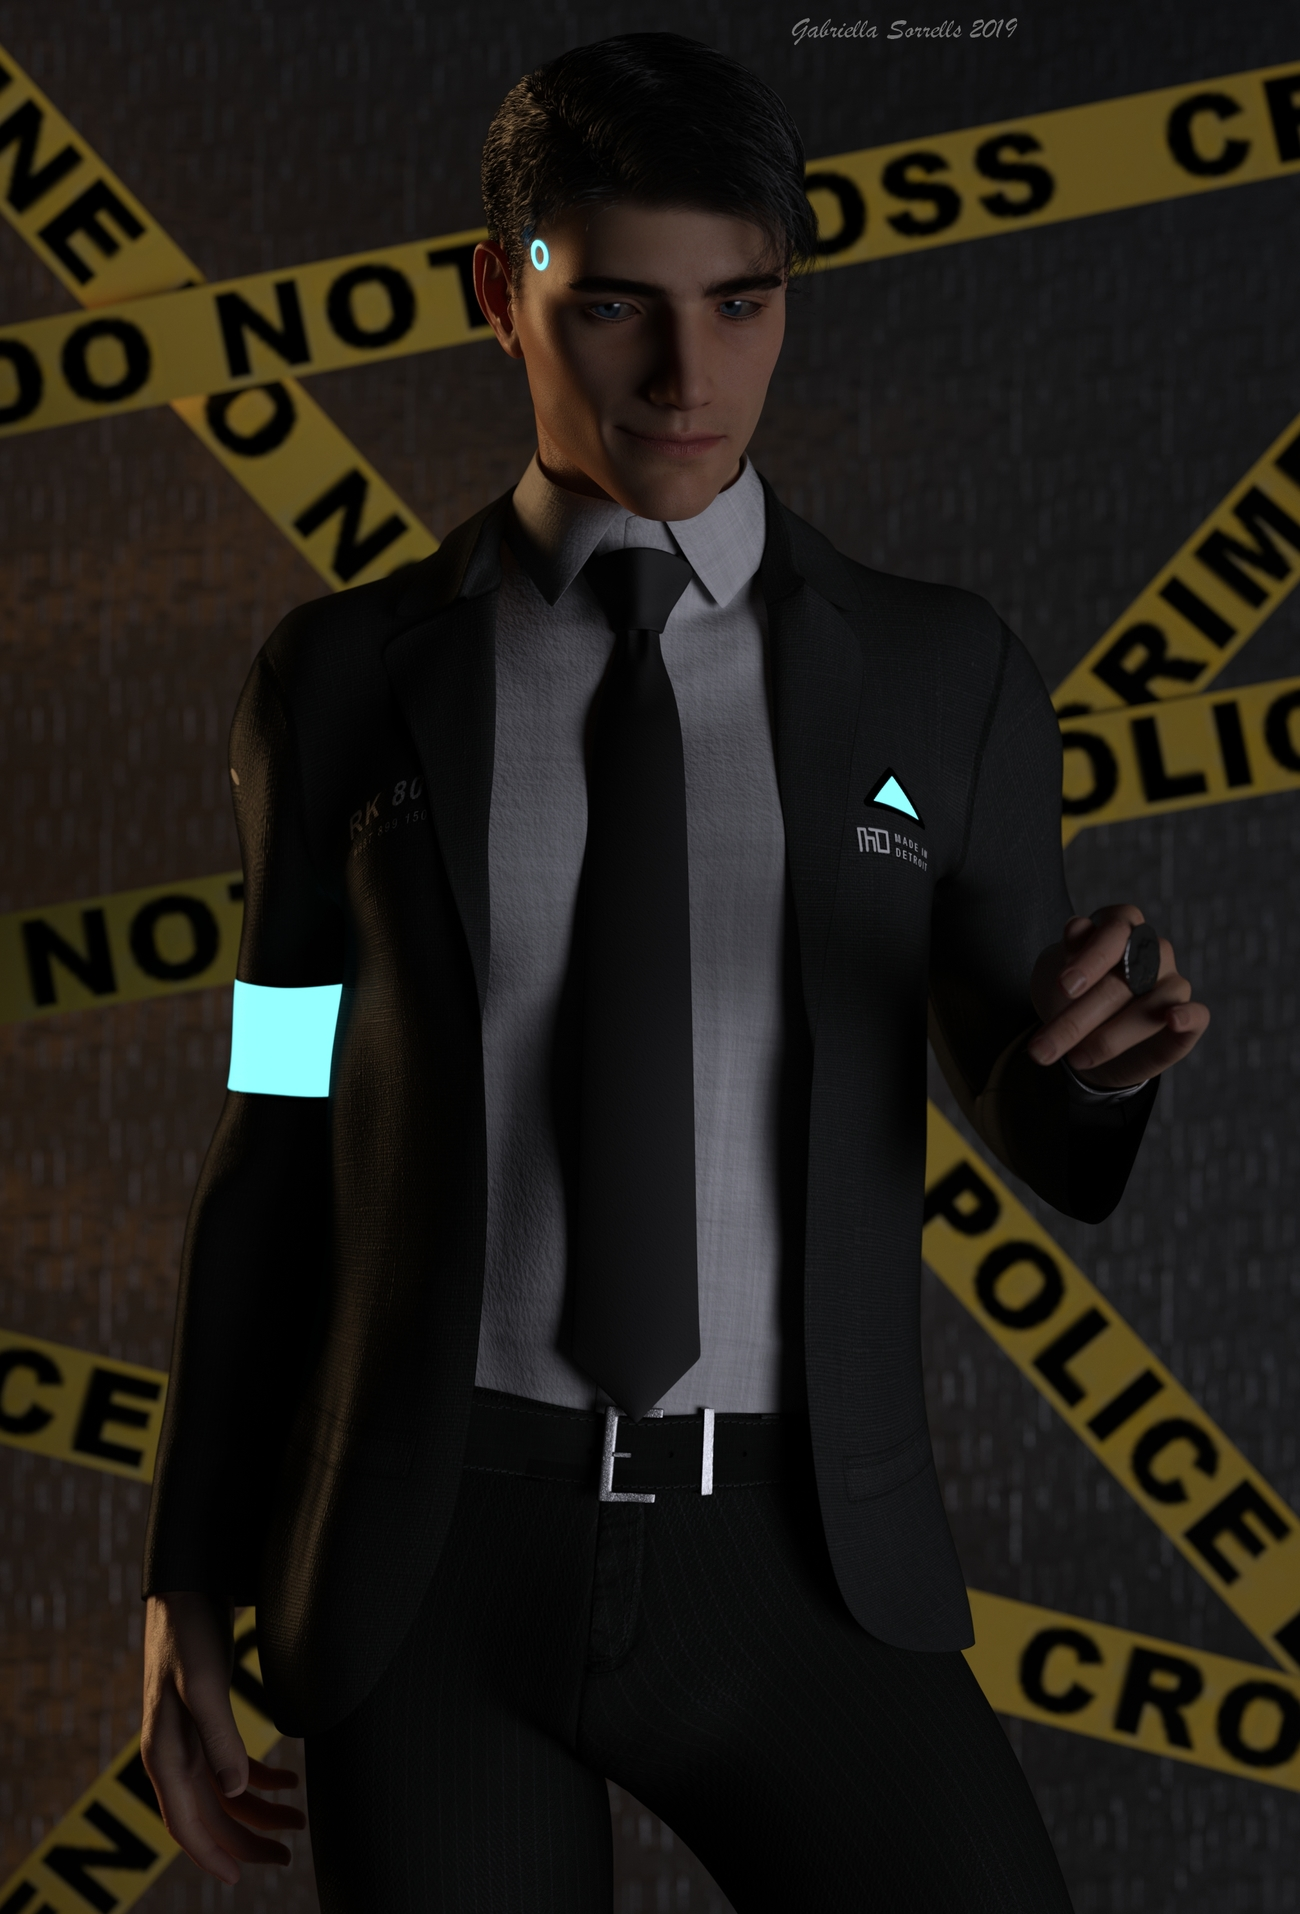 Connor by zombietaggerung